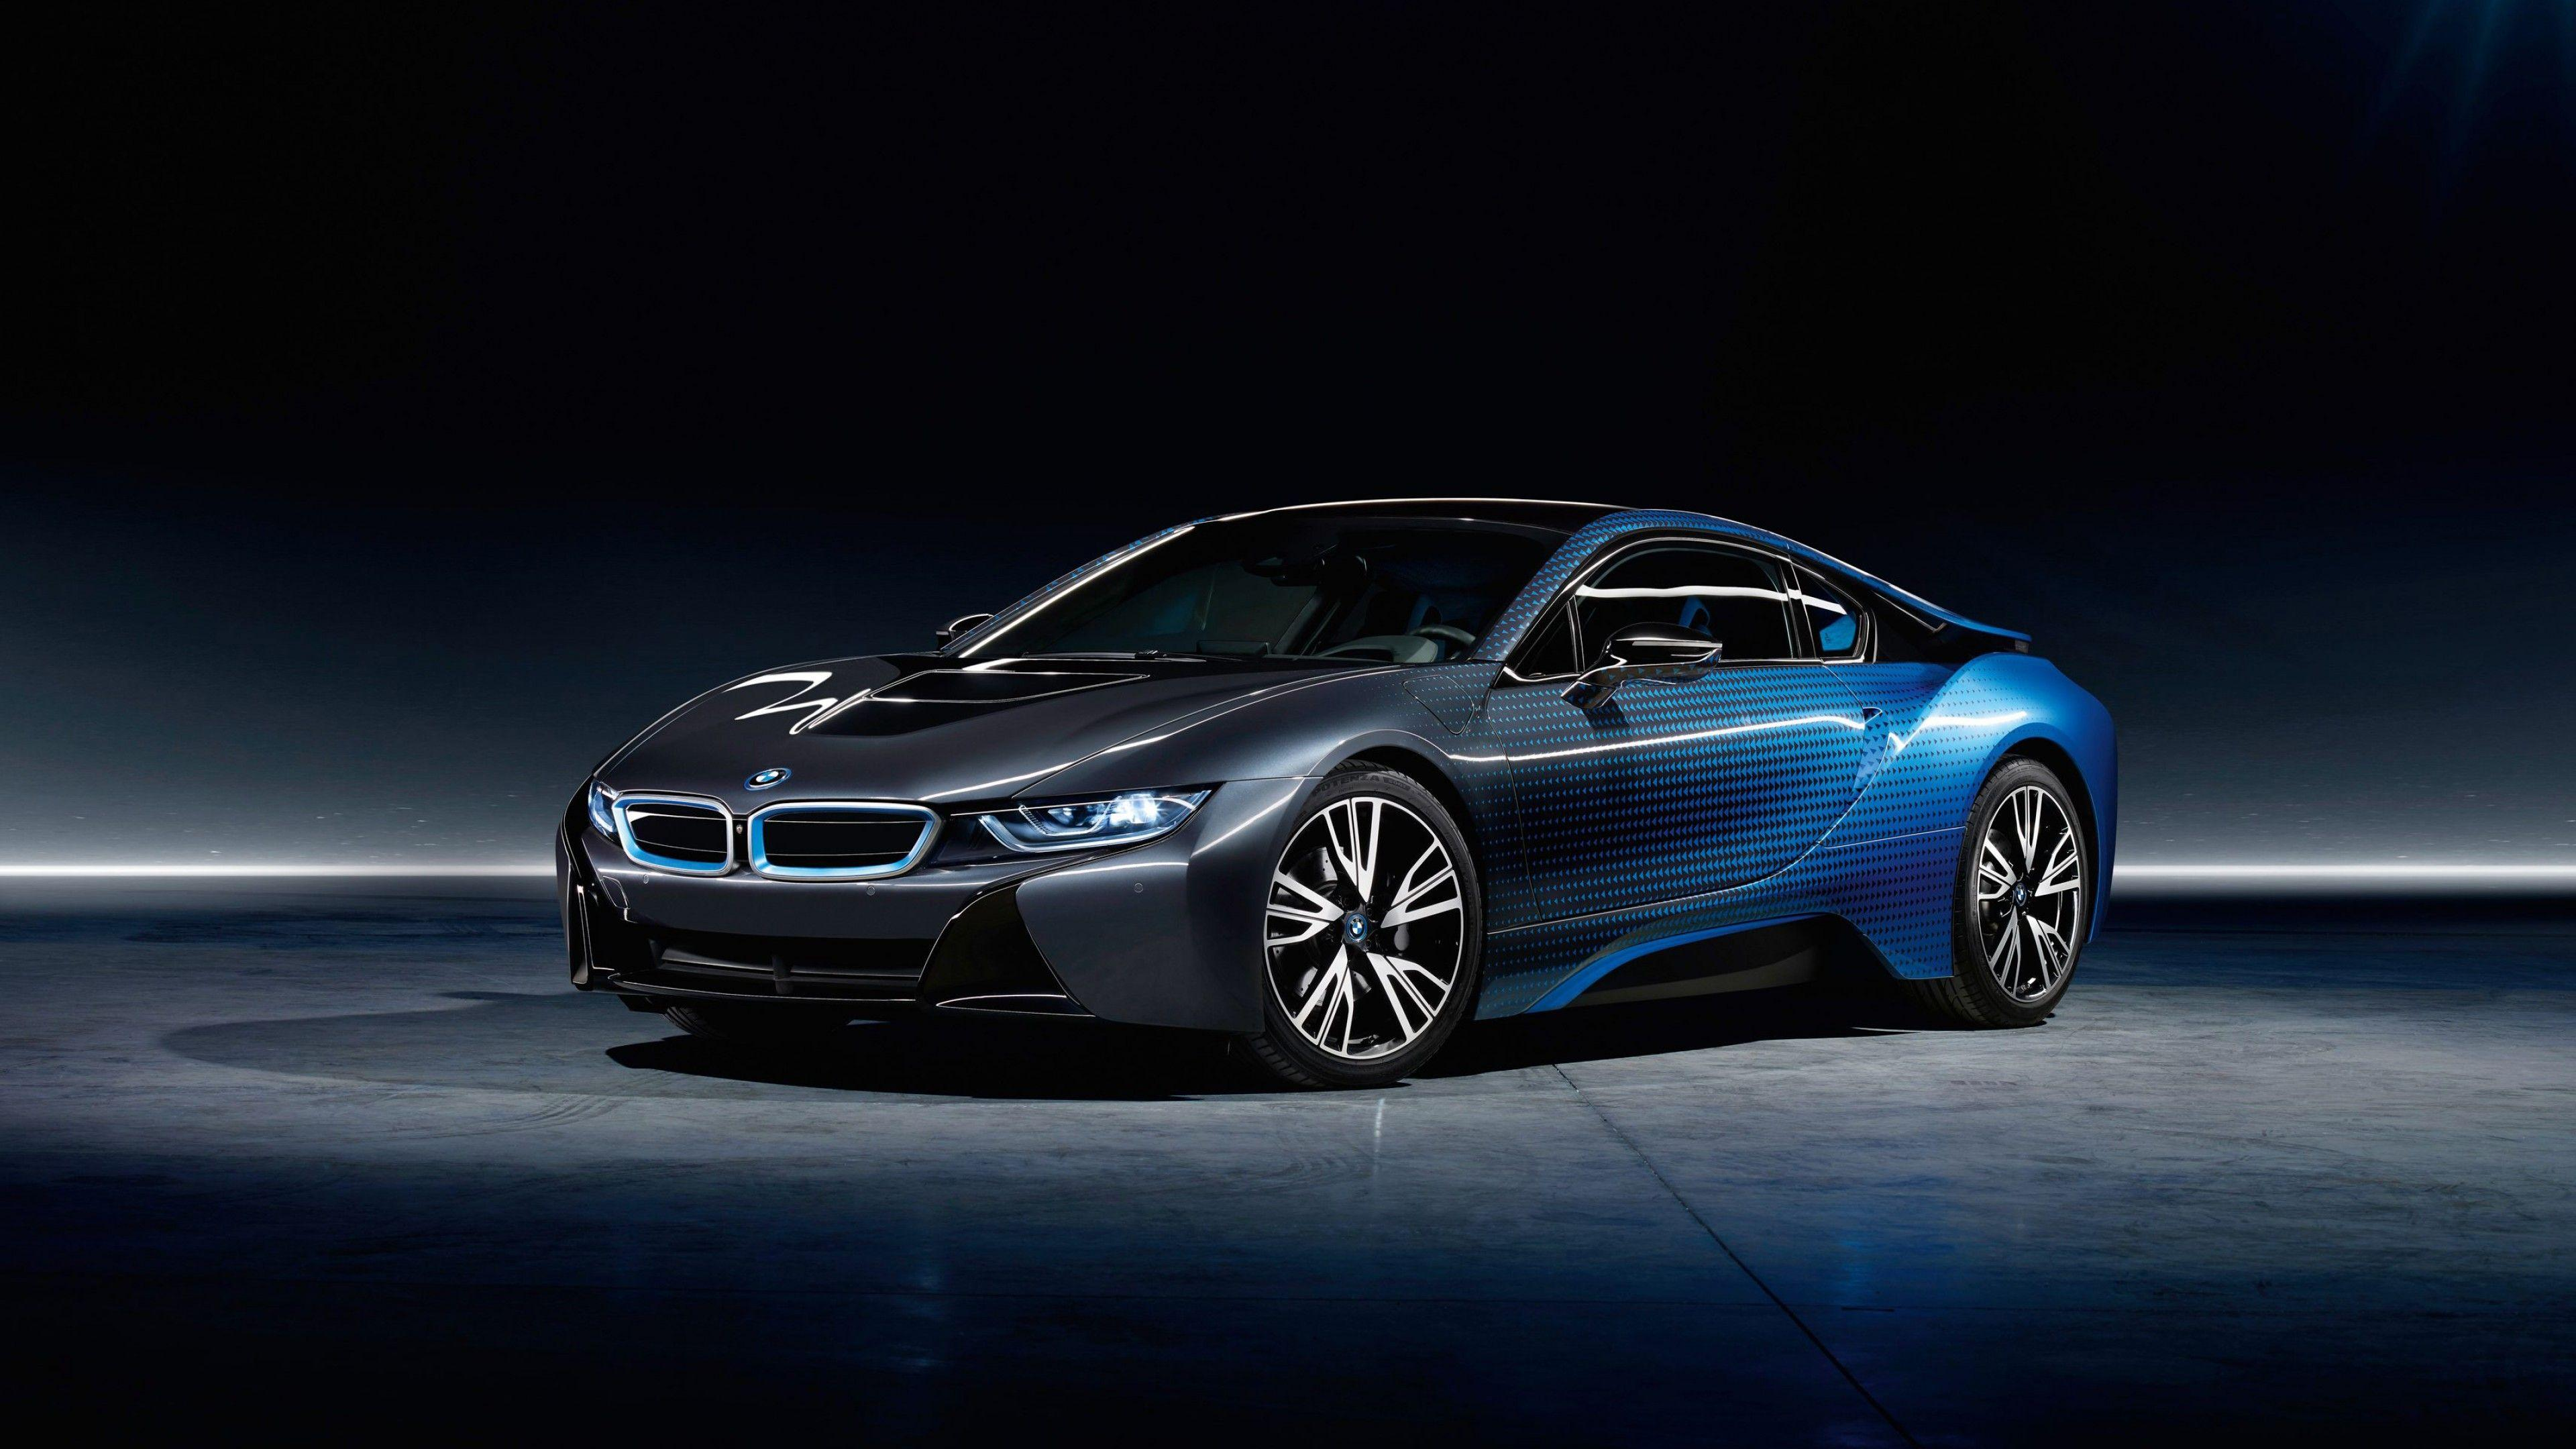 Wallpapers BMW i8, Garage Italia, CrossFade, Paint job, Special